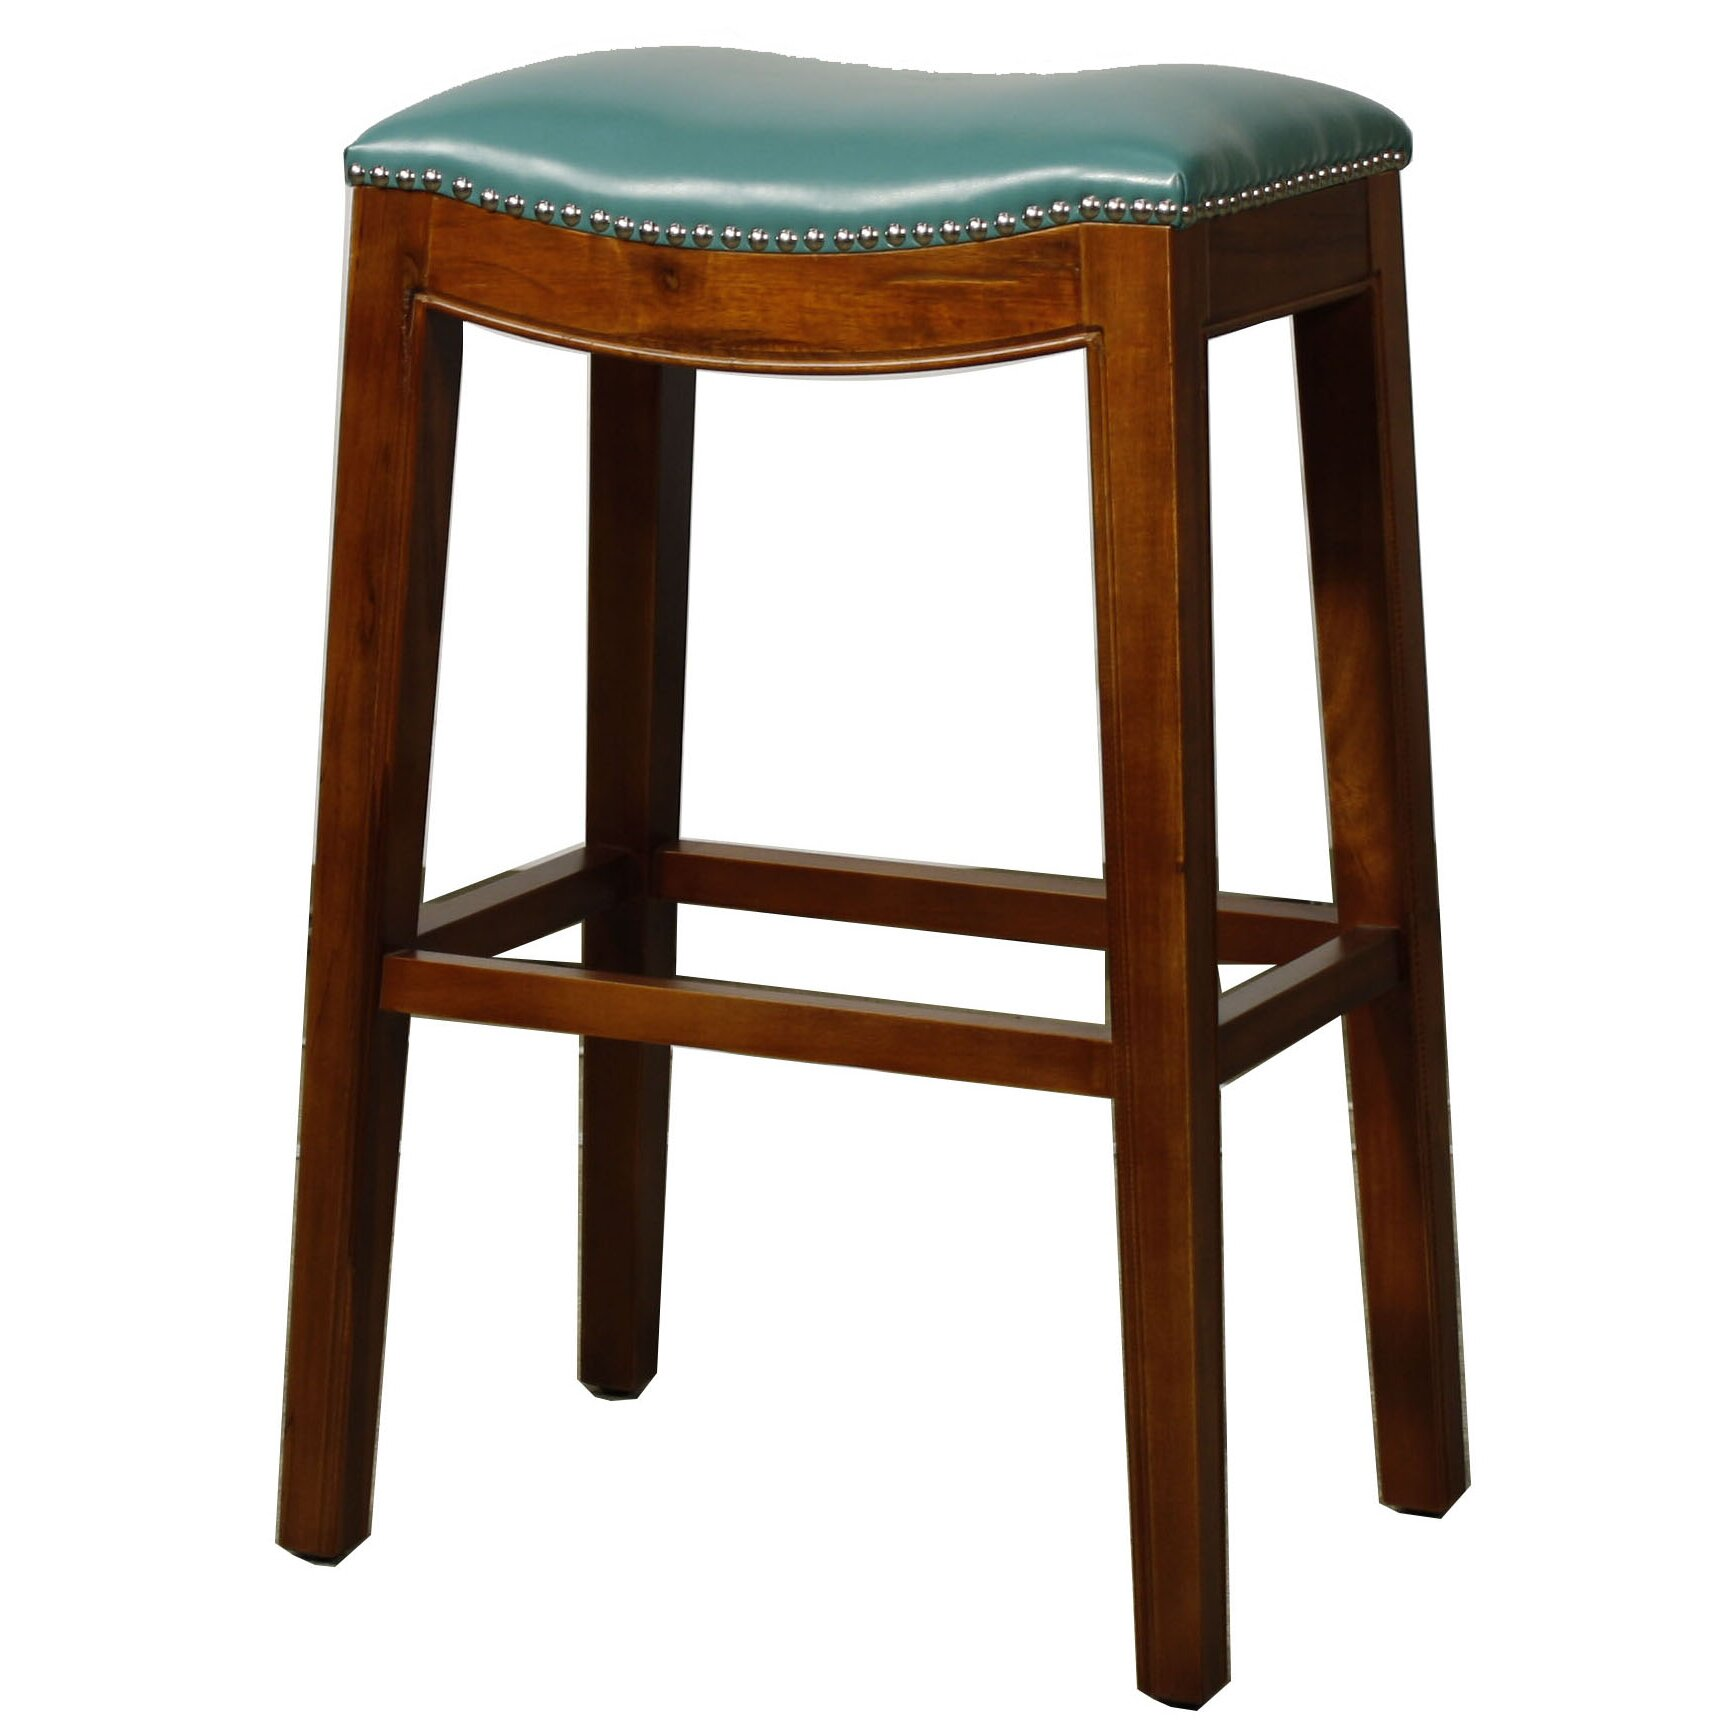 stress colored stool : Darby Home Co Reg Lilly 31 Quot Bar Stool Magnifying Glass